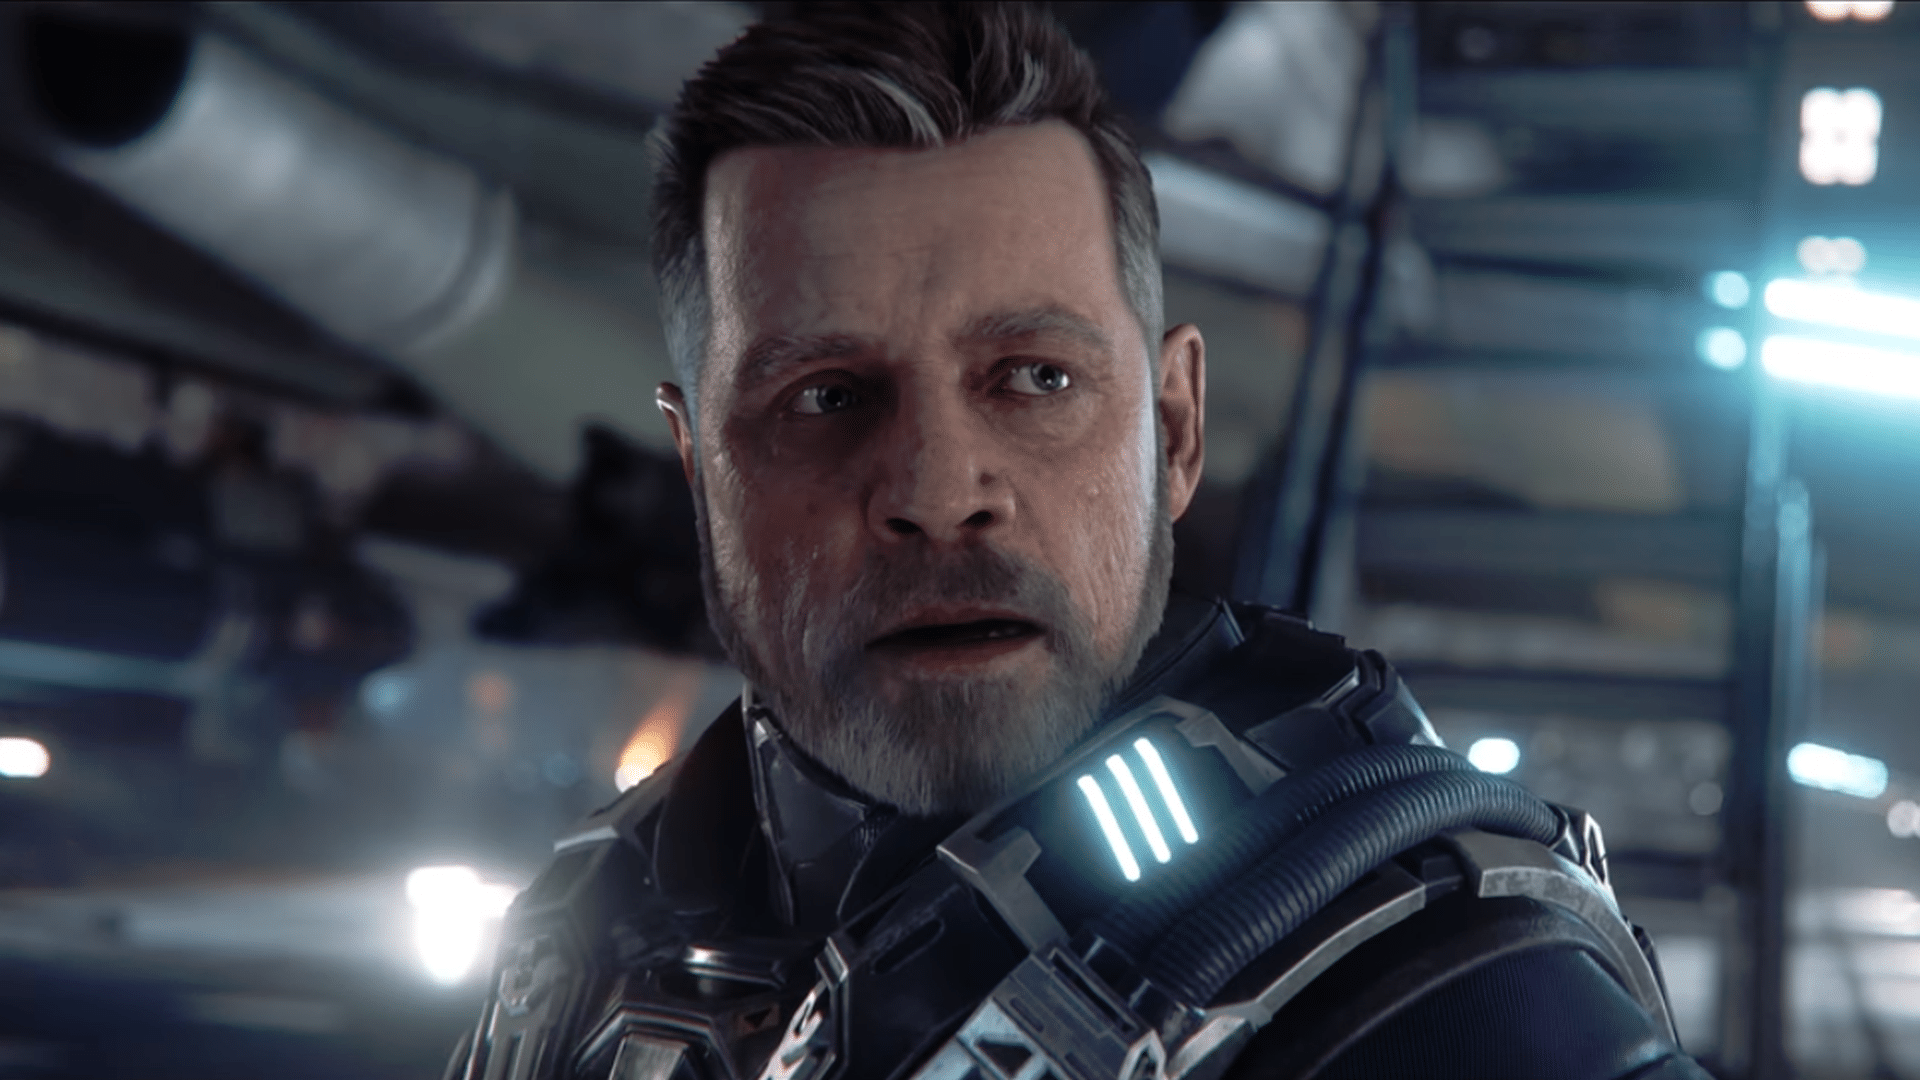 Another Year And Still No Squadron 42 Release